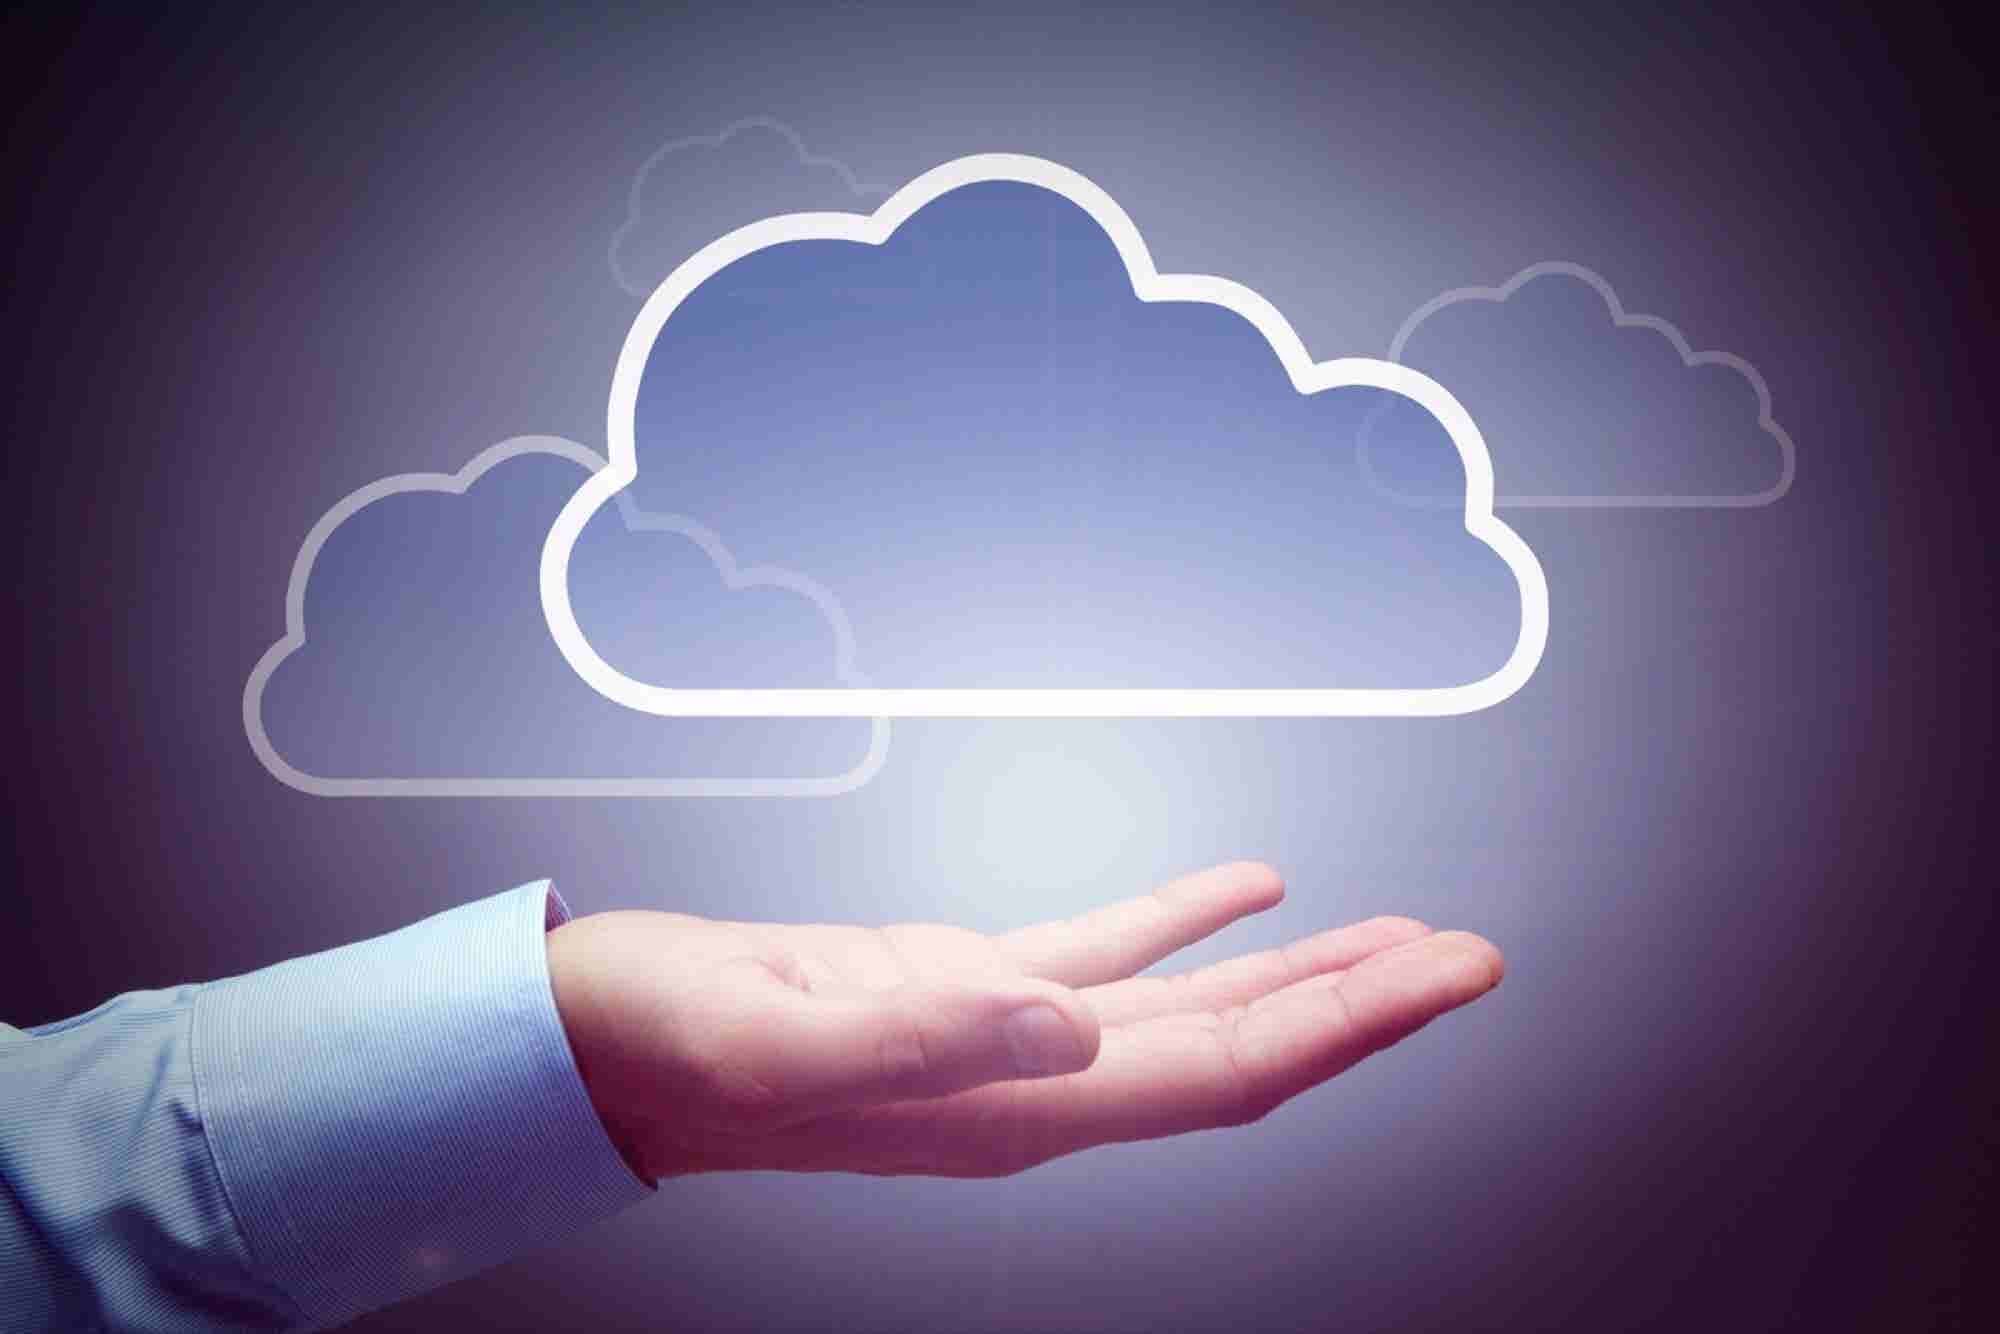 Amid Cloud Adoption, APAC Enterprises See Rise in Threat-Alert Fatigue